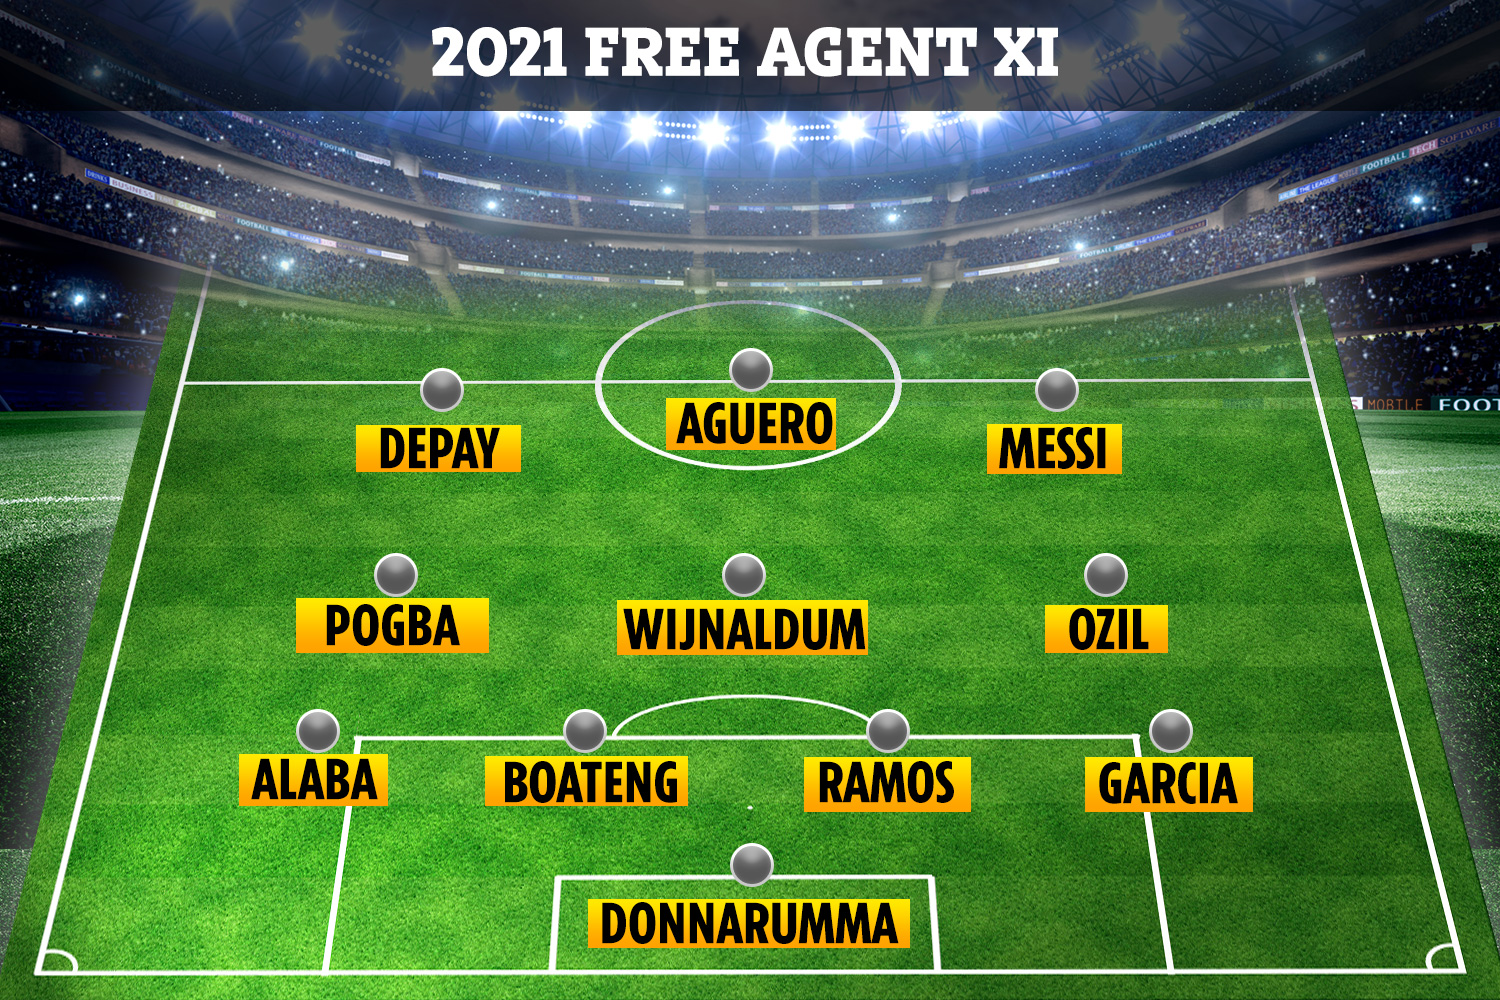 These players are all out of contract come the end of the season so will be available for free